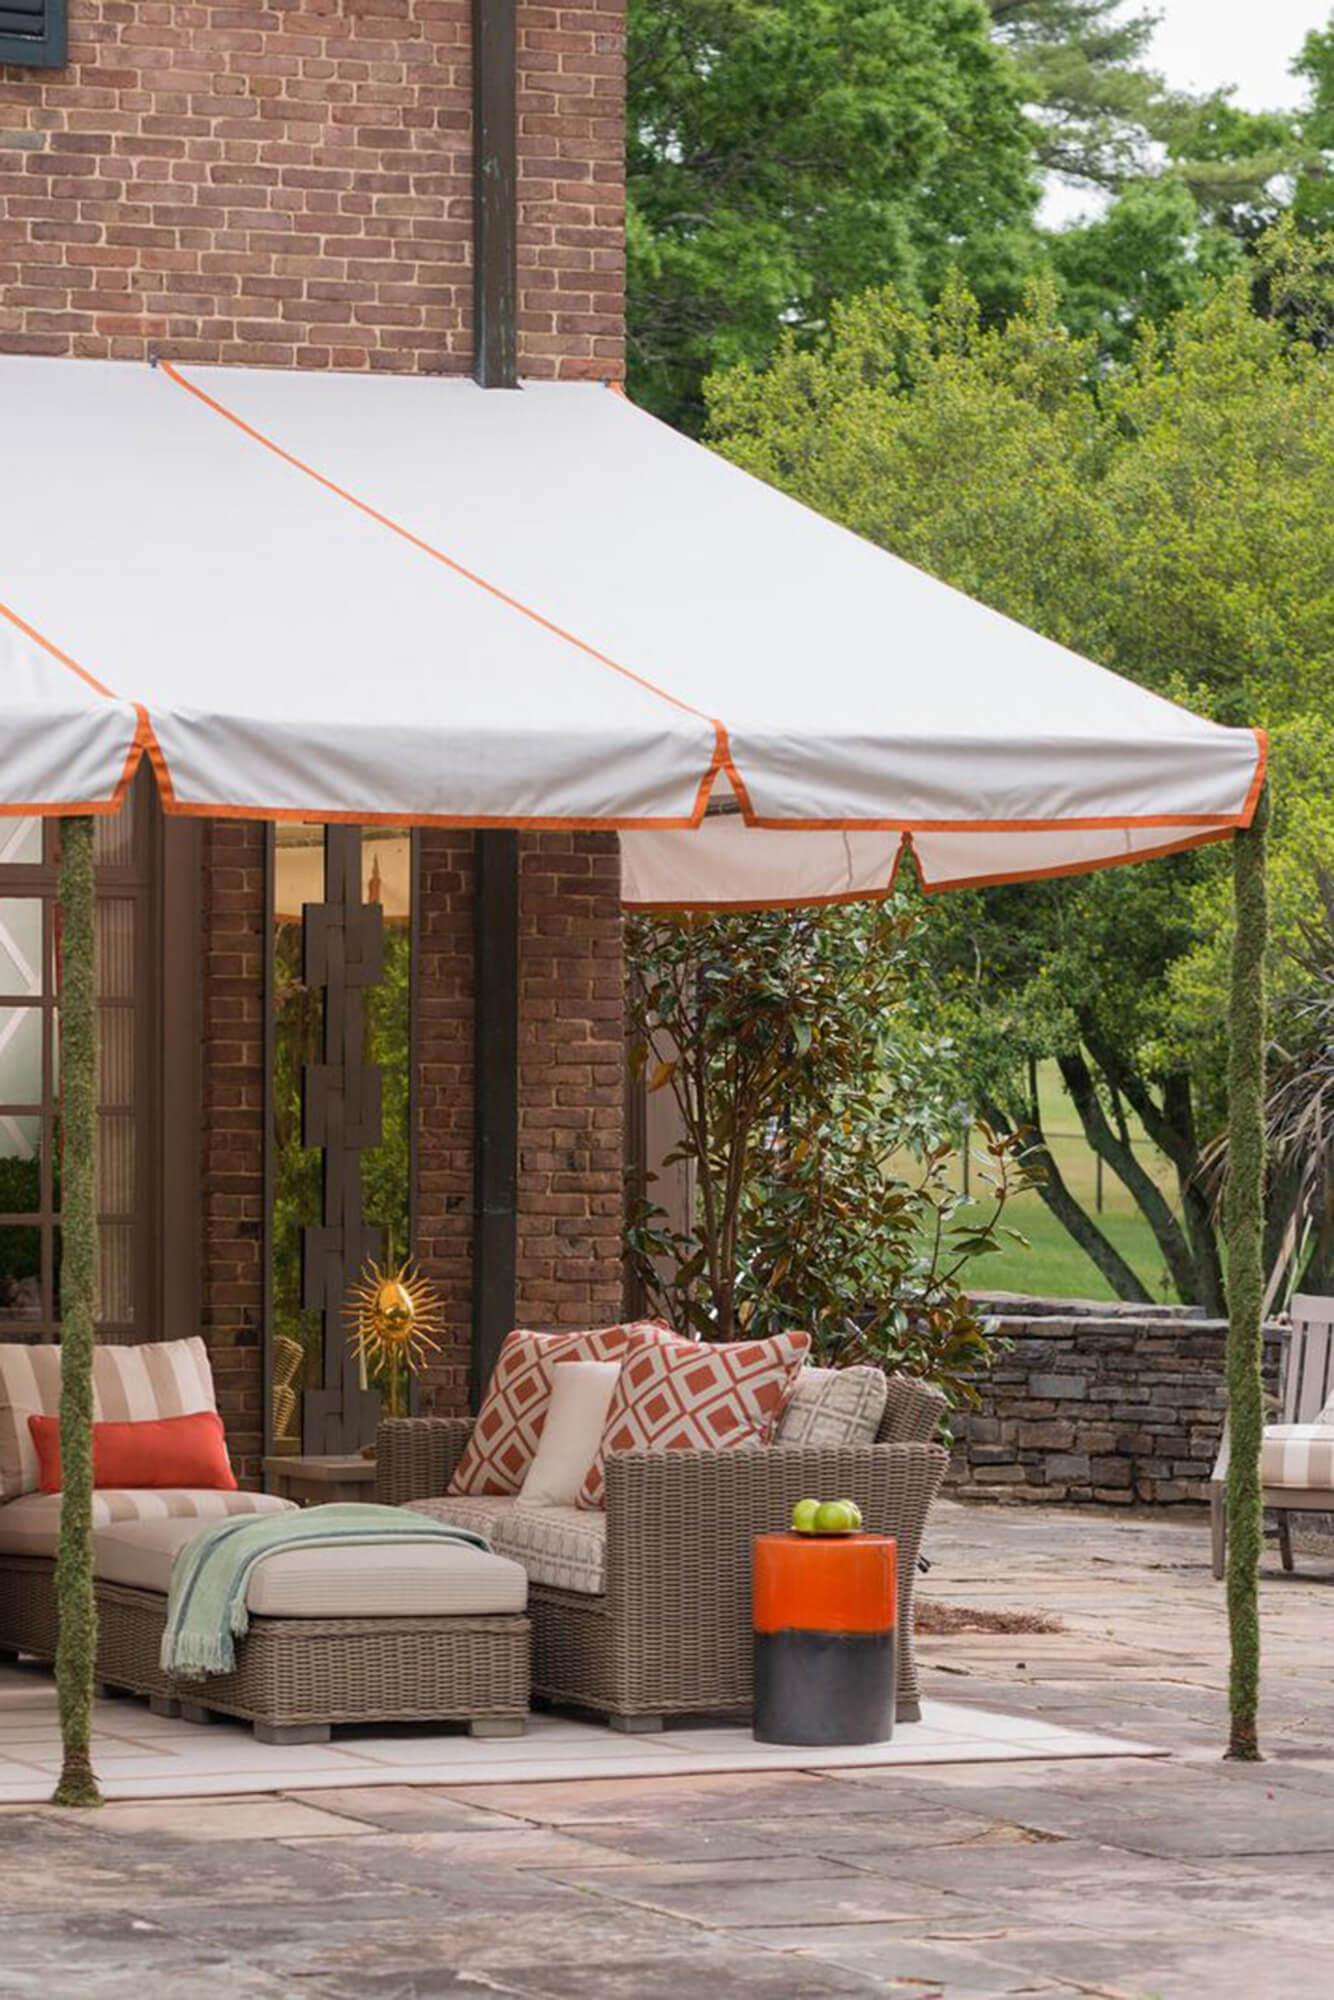 Fixed Frame AwningsResidential Shade Fabrics   Sunbrella Fabrics. Outdoor Fabric Sun Shades. Home Design Ideas